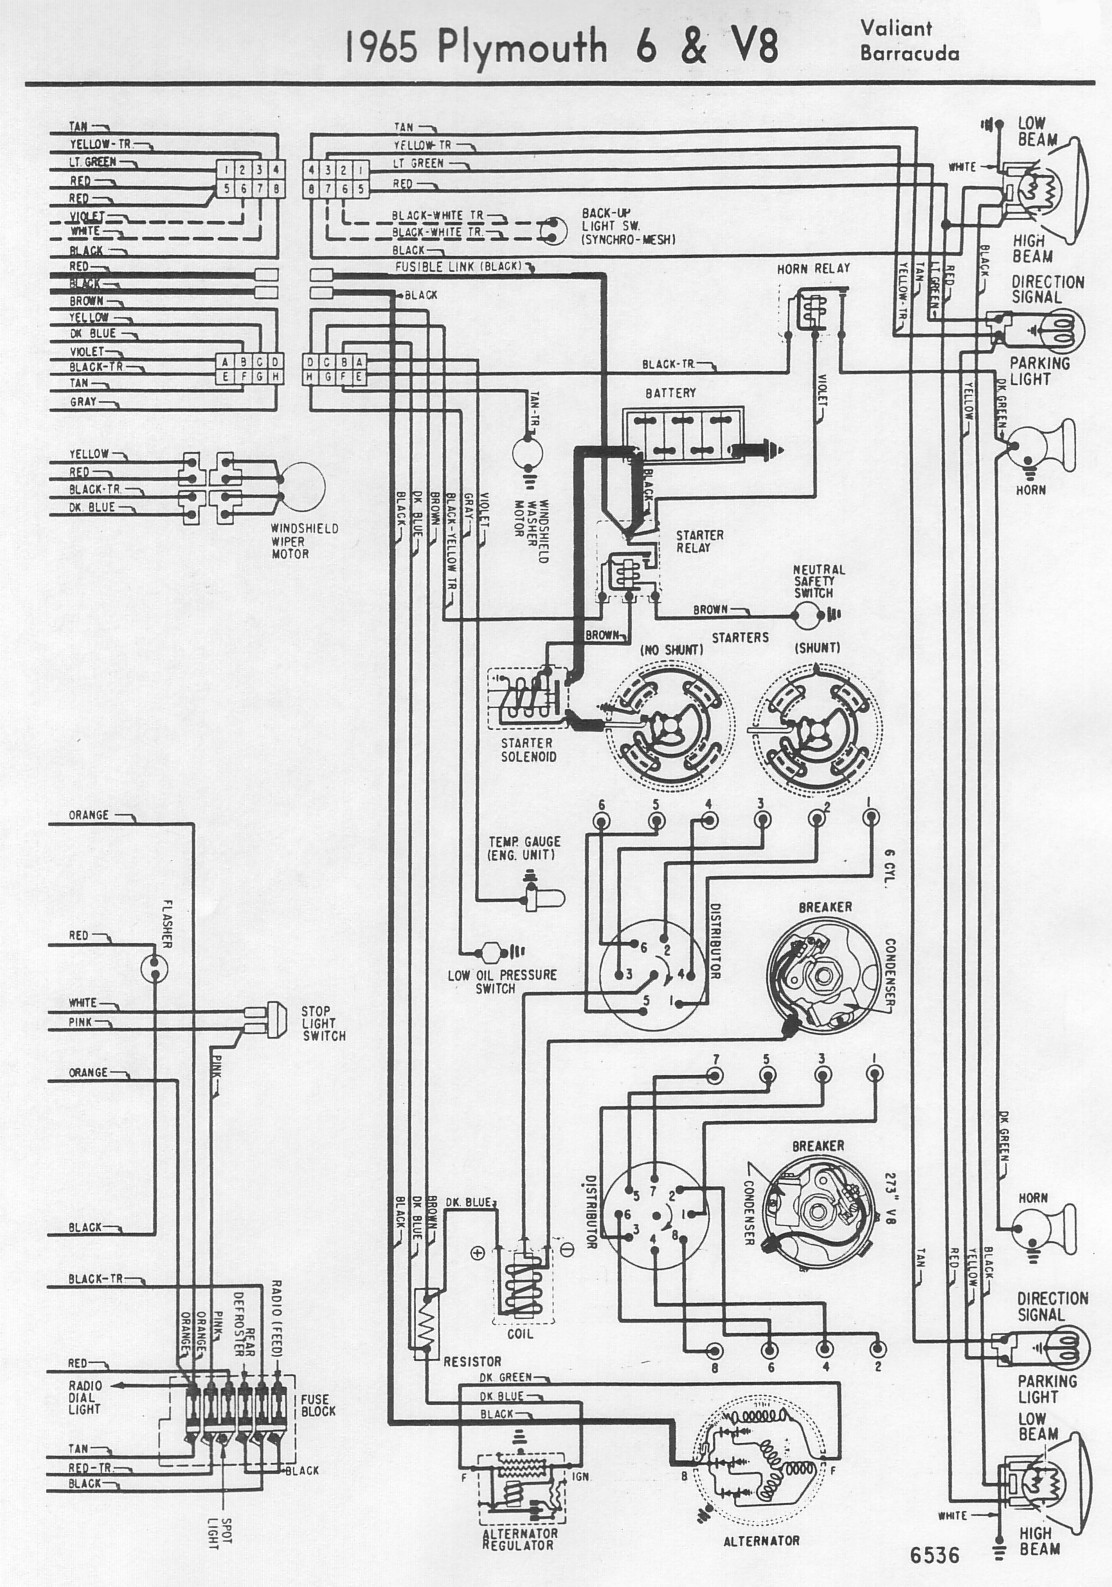 hight resolution of 1968 barracuda wiring diagram wiring diagram site 1968 plymouth barracuda wiring diagram 1968 barracuda wiring diagram